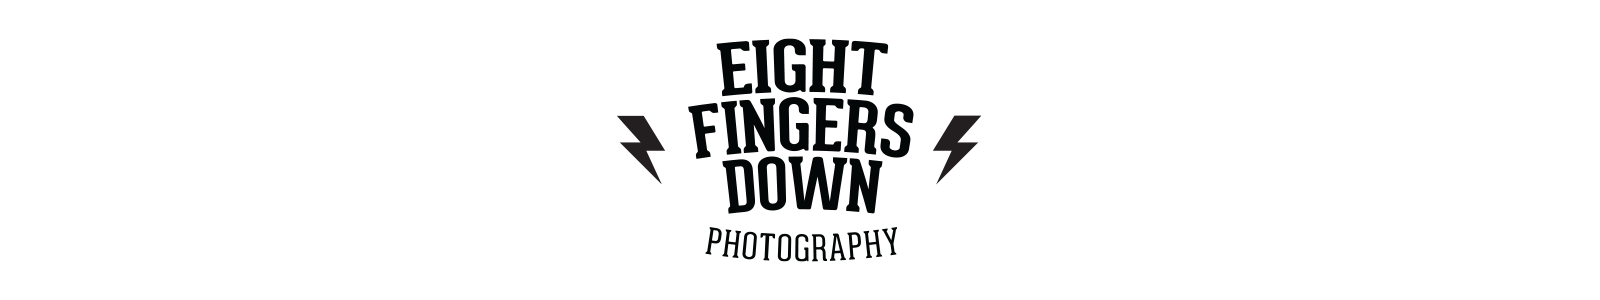 Eight Fingers Down: Photography by Matthias Schreyer